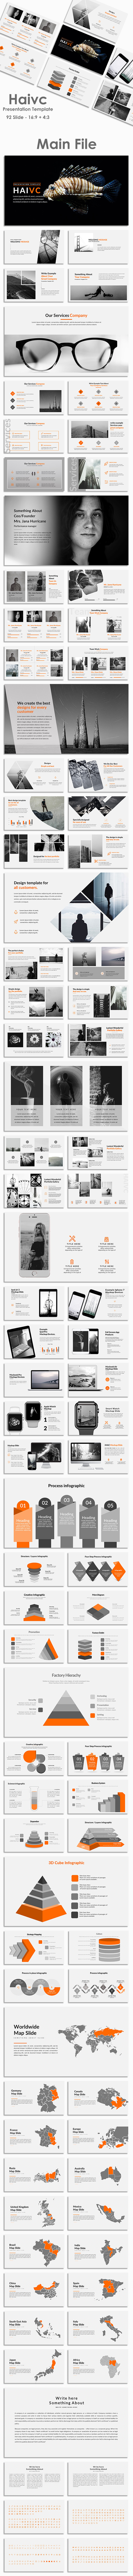 Haivc Multipurpose Keynote Template - Creative Keynote Templates